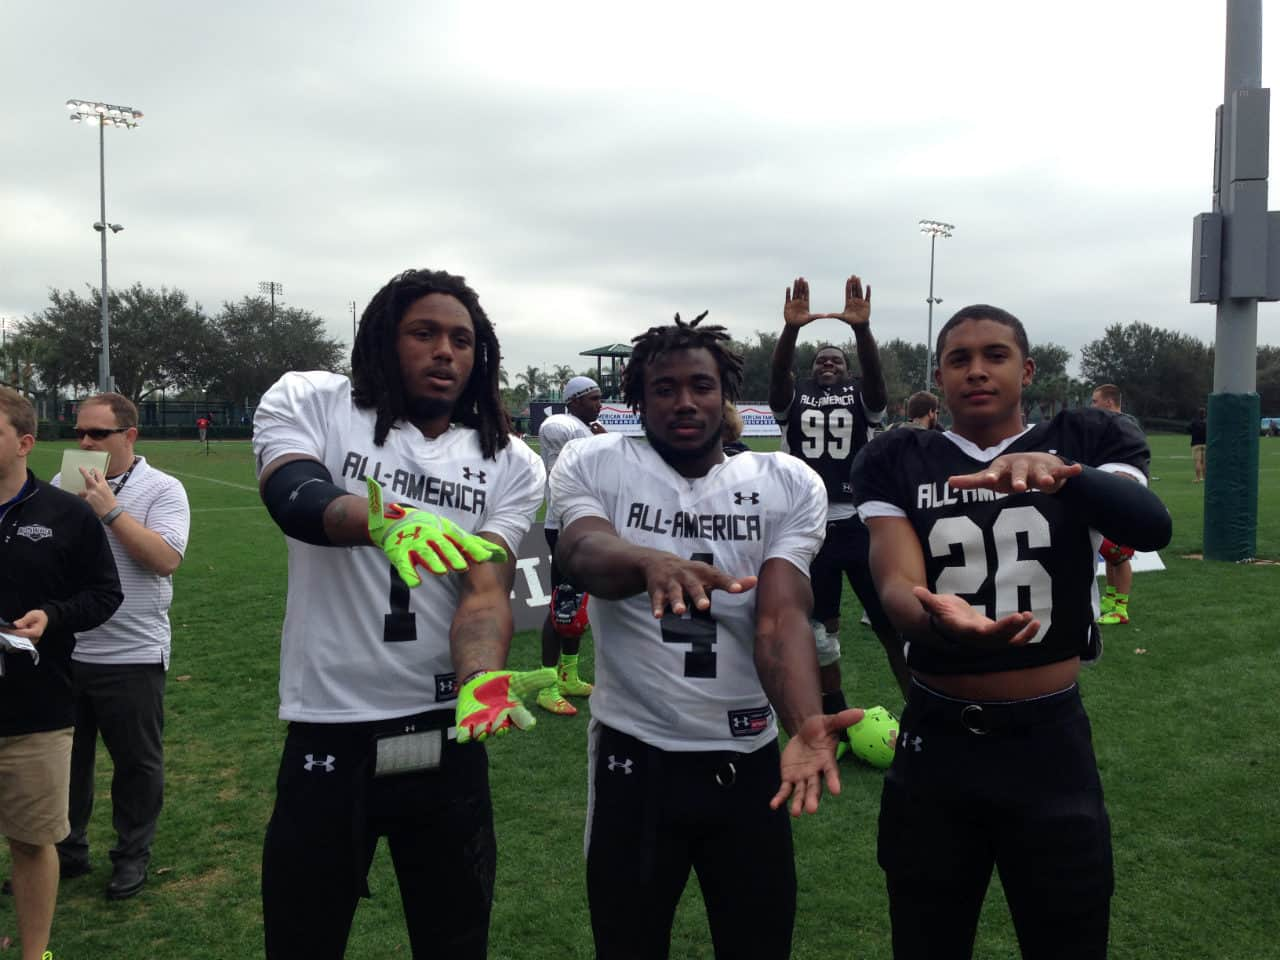 Ermon Lane (left), Dalvin Cook (center) and Quincy Wilson (right) Gator chomp after the second practice at the Under Armour All-American game.